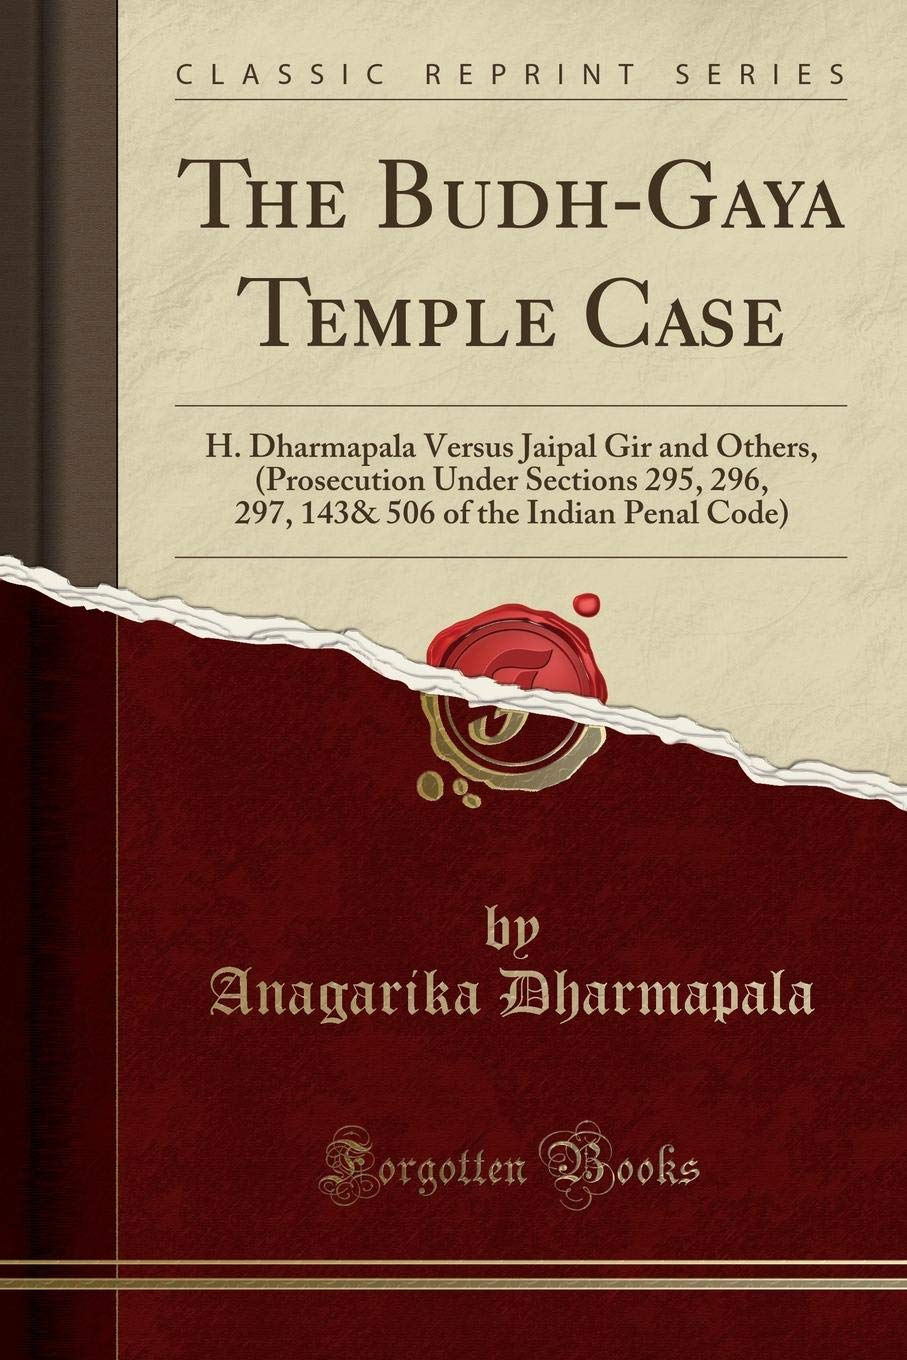 Read Online The Budh-Gaya Temple Case: H. Dharmapala Versus Jaipal Gir and Others, (Prosecution Under Sections 295, 296, 297, 143& 506 of the Indian Penal Code) (Classic Reprint) ebook